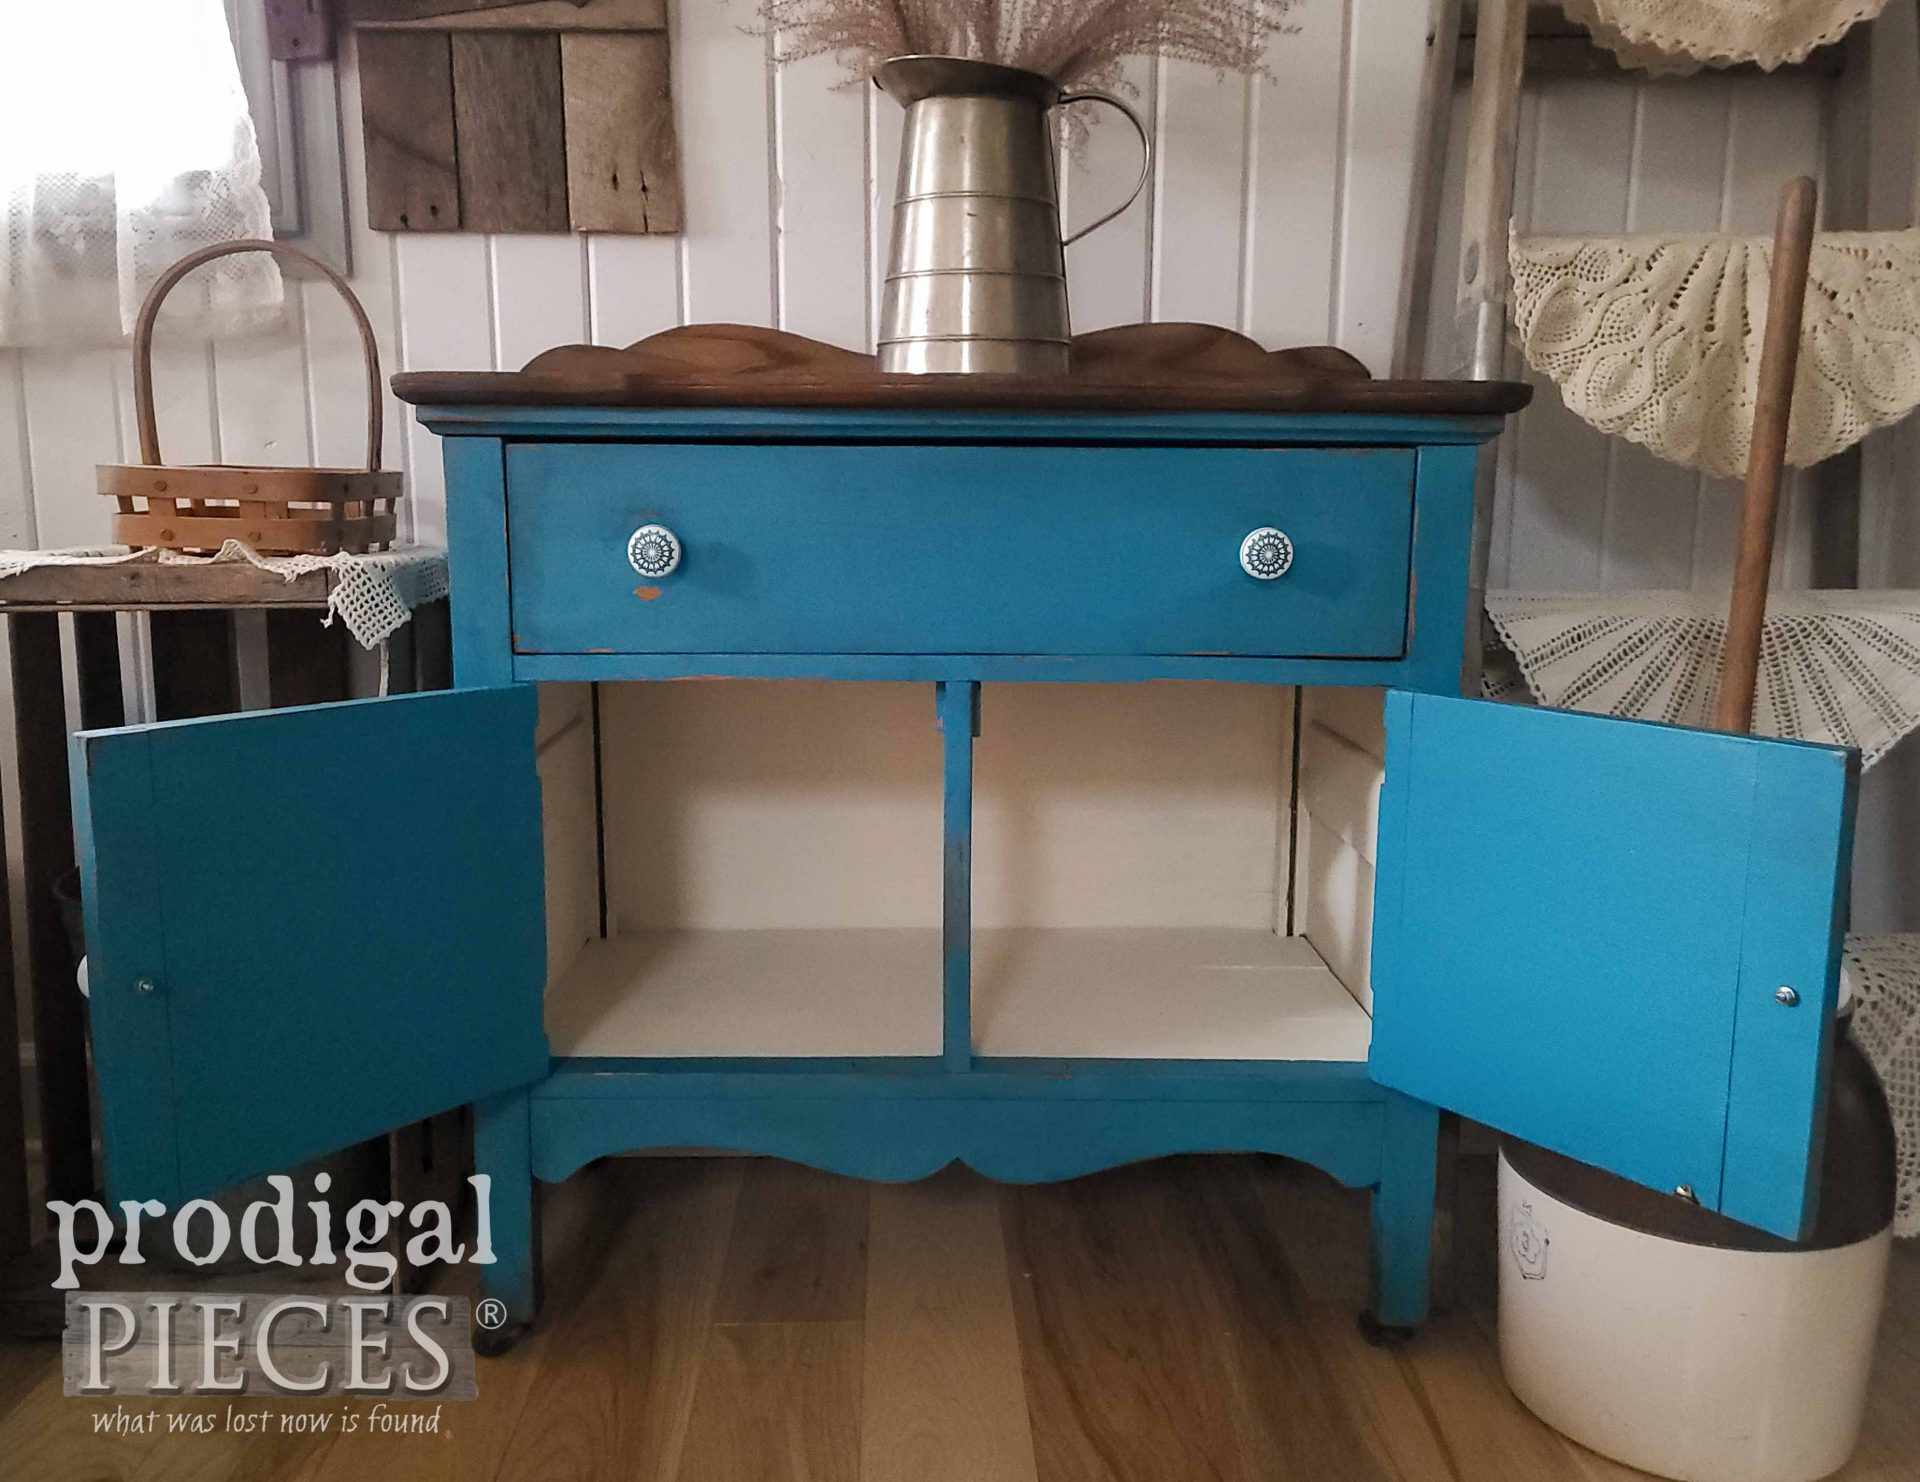 Open Farmhouse Wash Stand Interior by Larissa of Prodigal Pieces | prodigalpieces.com #prodigalpieces #diy #farmhouse #home #homedecor